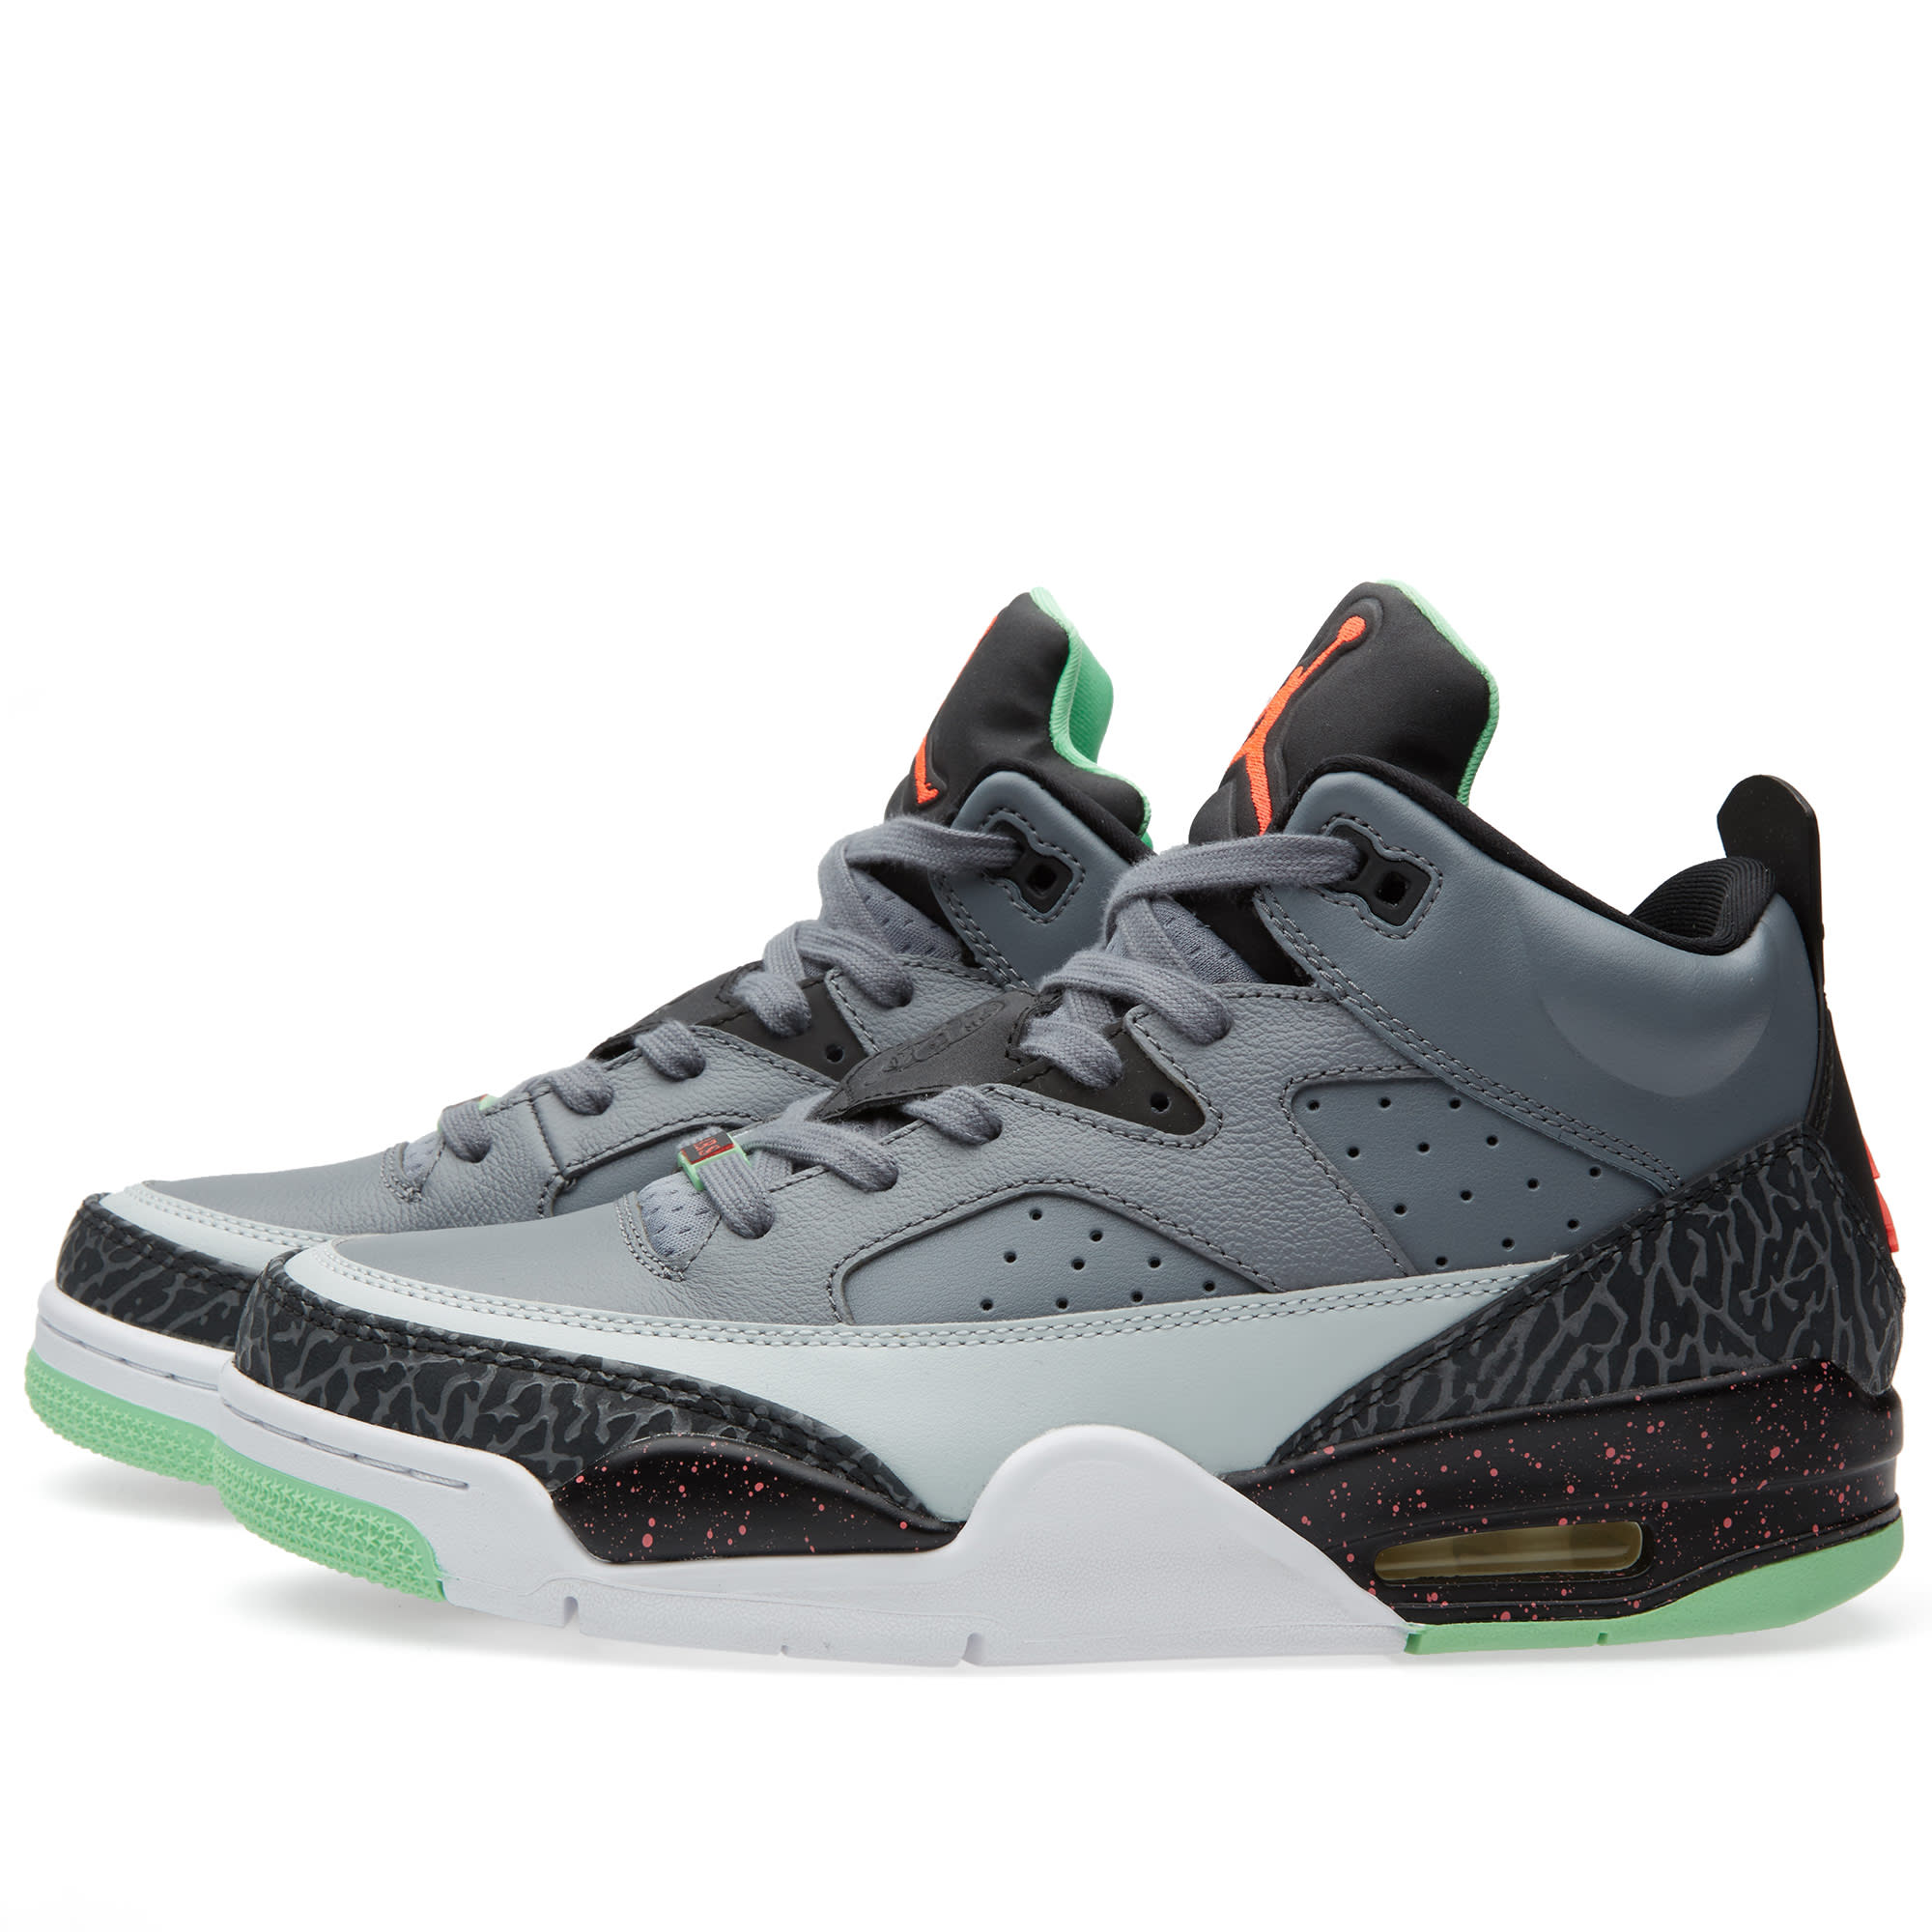 huge discount a09bf 834cf Nike Jordan Son of Mars Low Cool Grey, Infrared 23   Black   END.